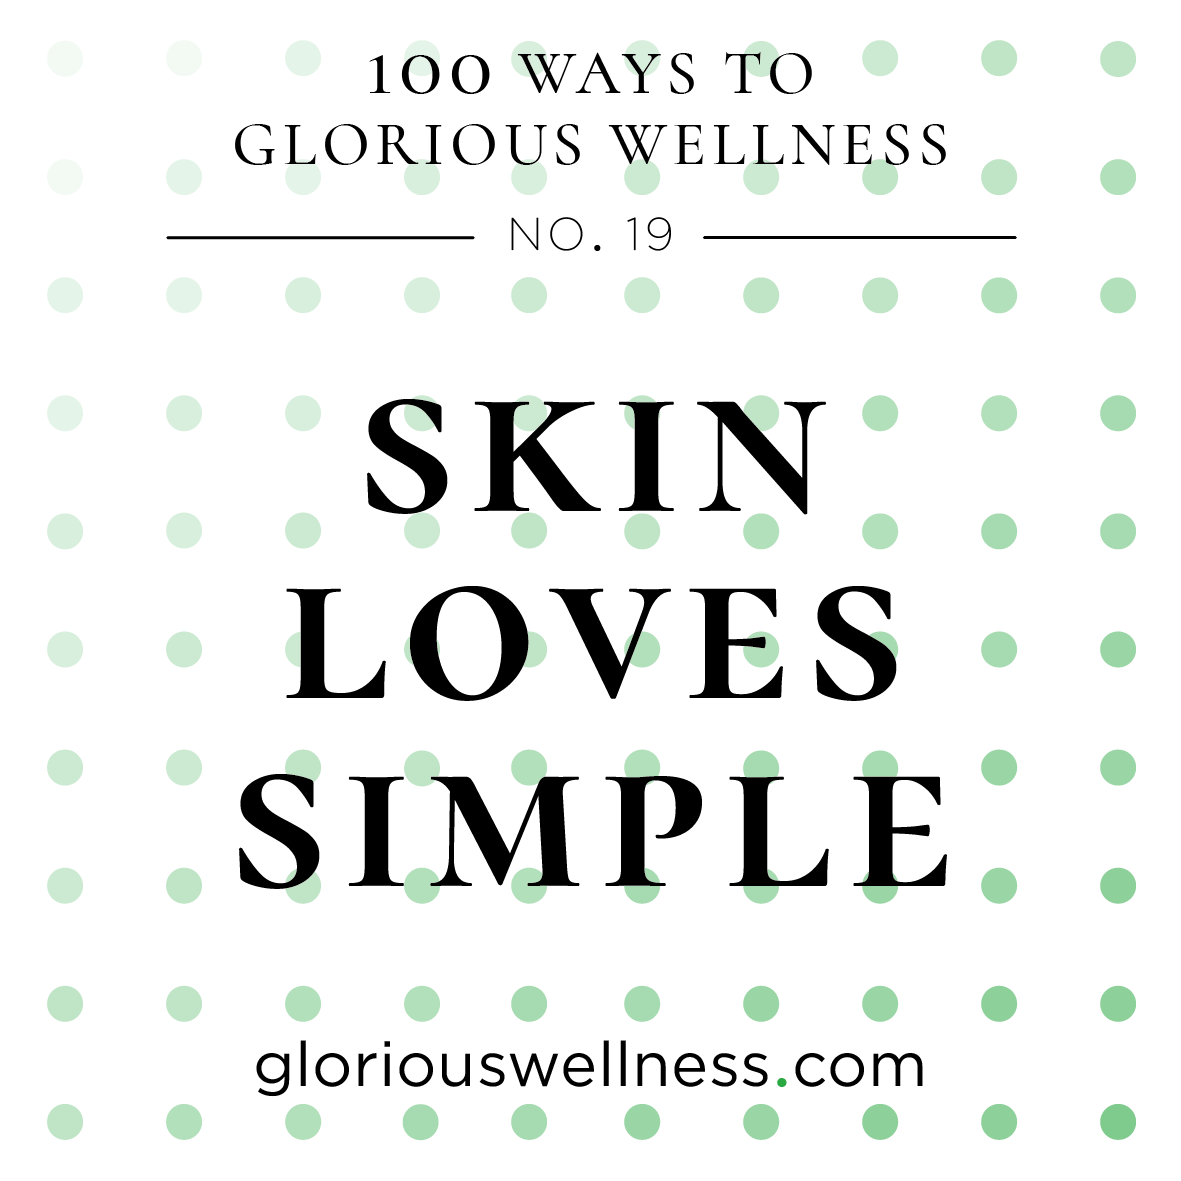 No. 19 - Skin Loves Simple